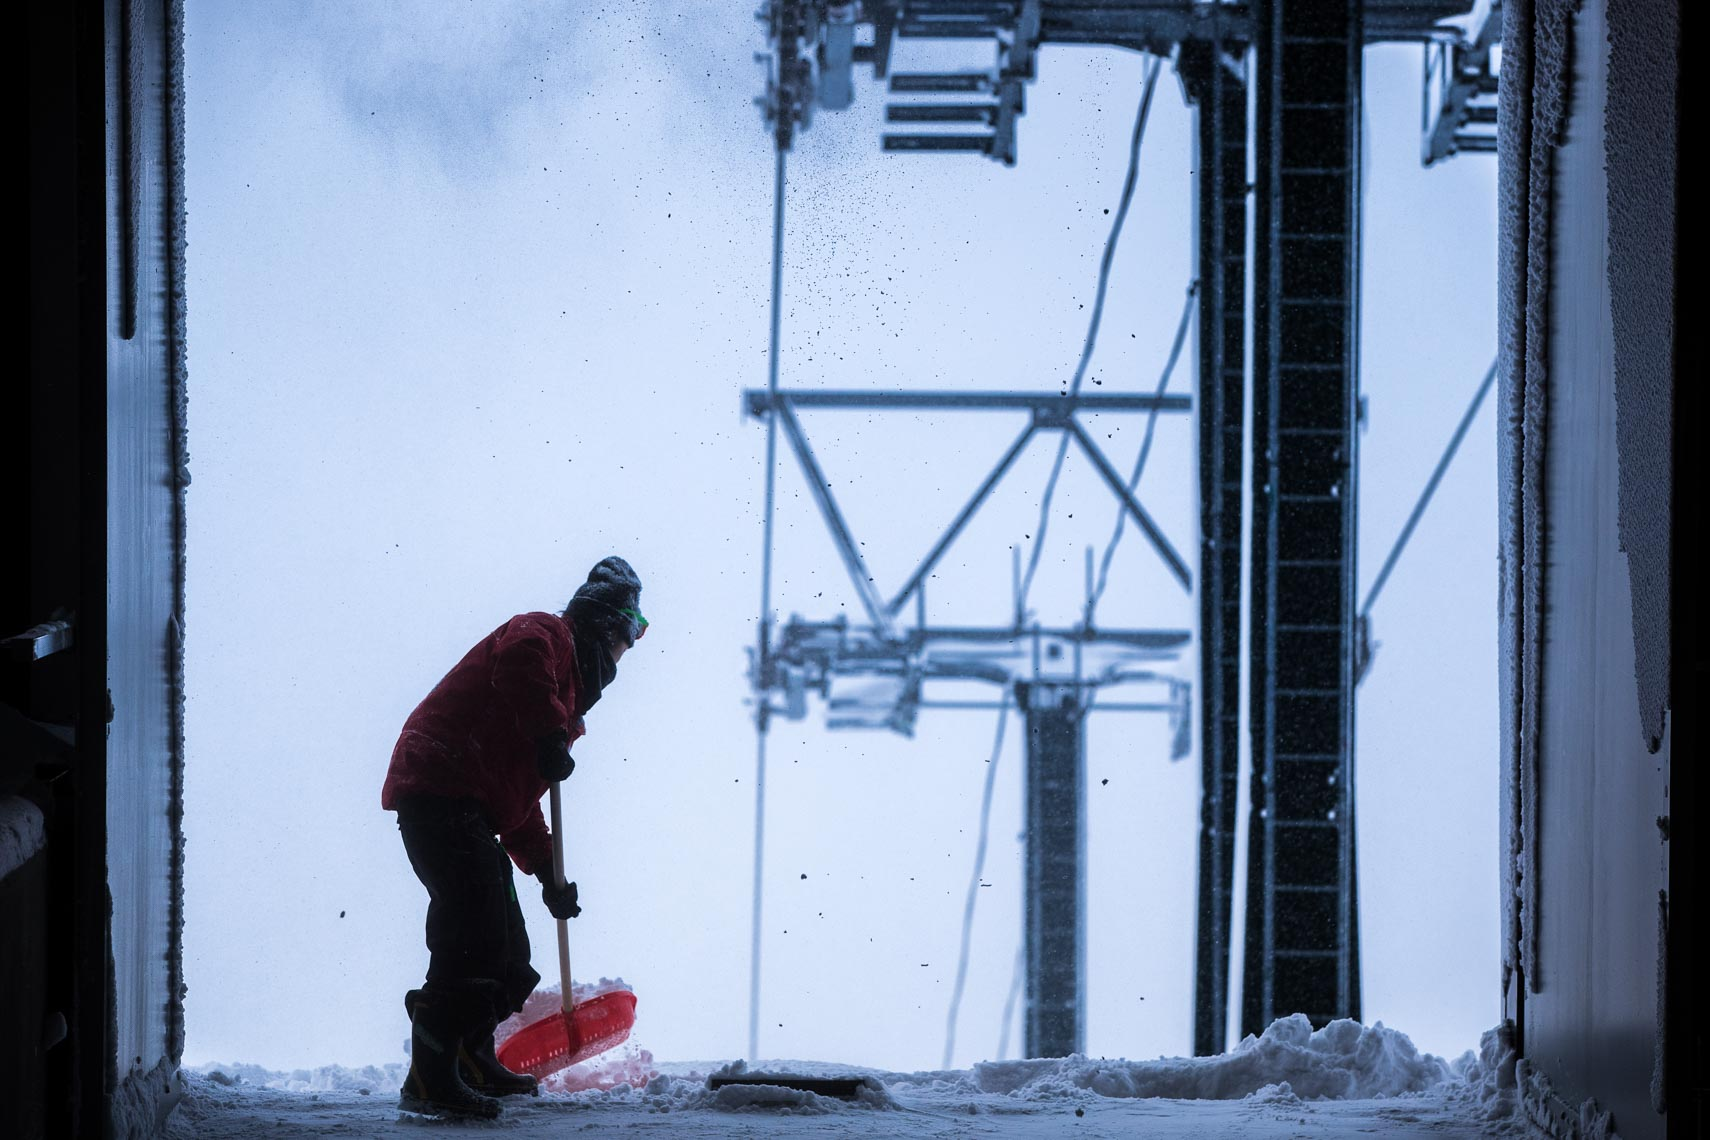 Canadian ski photographer travels to Hakuba Japan to shoot this ski lift image